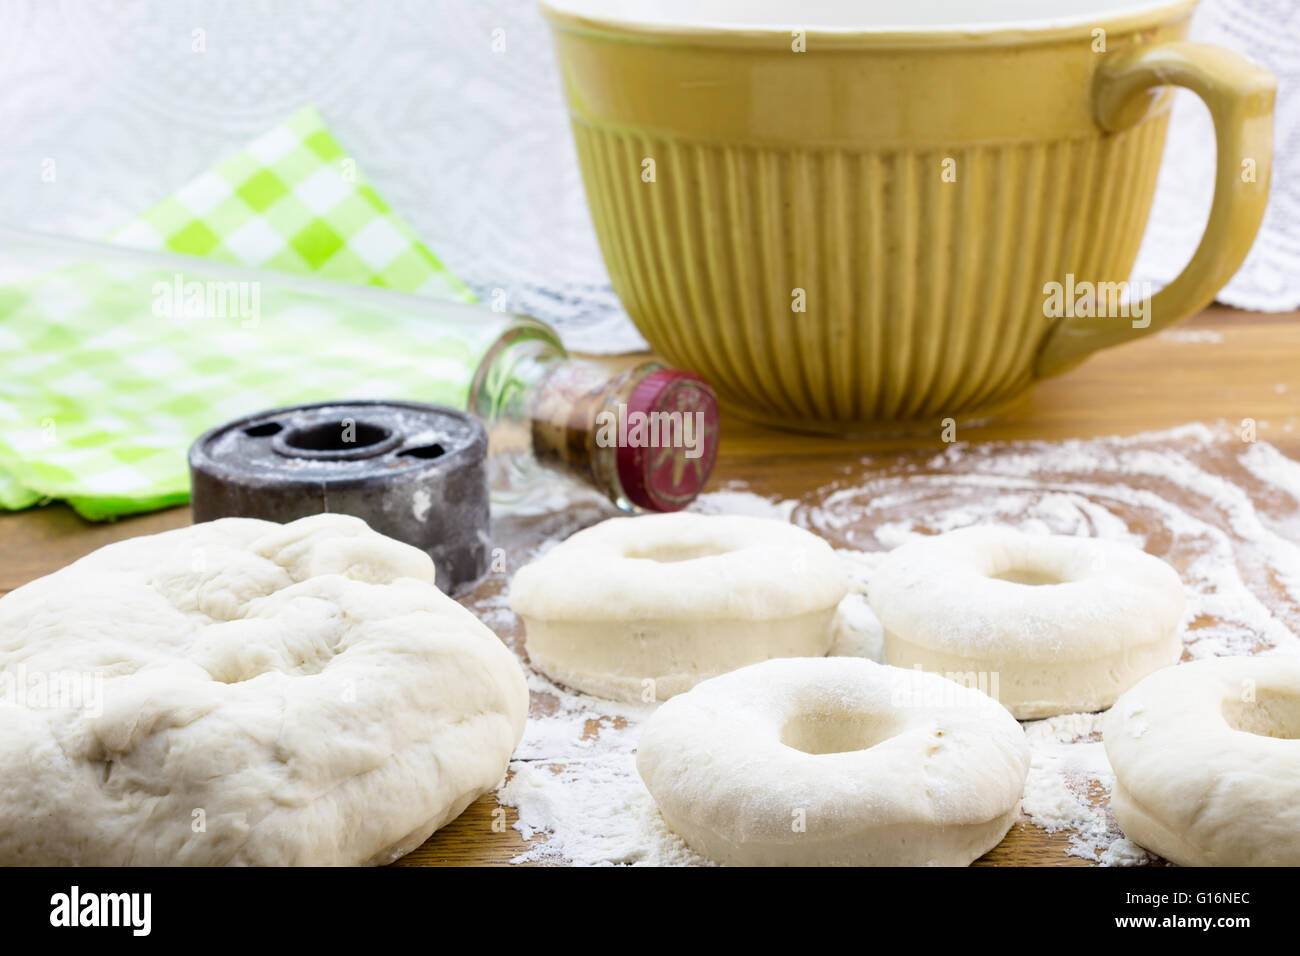 Risen dough nut dough on flowered wood table with vintage cutter and glass rolling pin Stock Photo